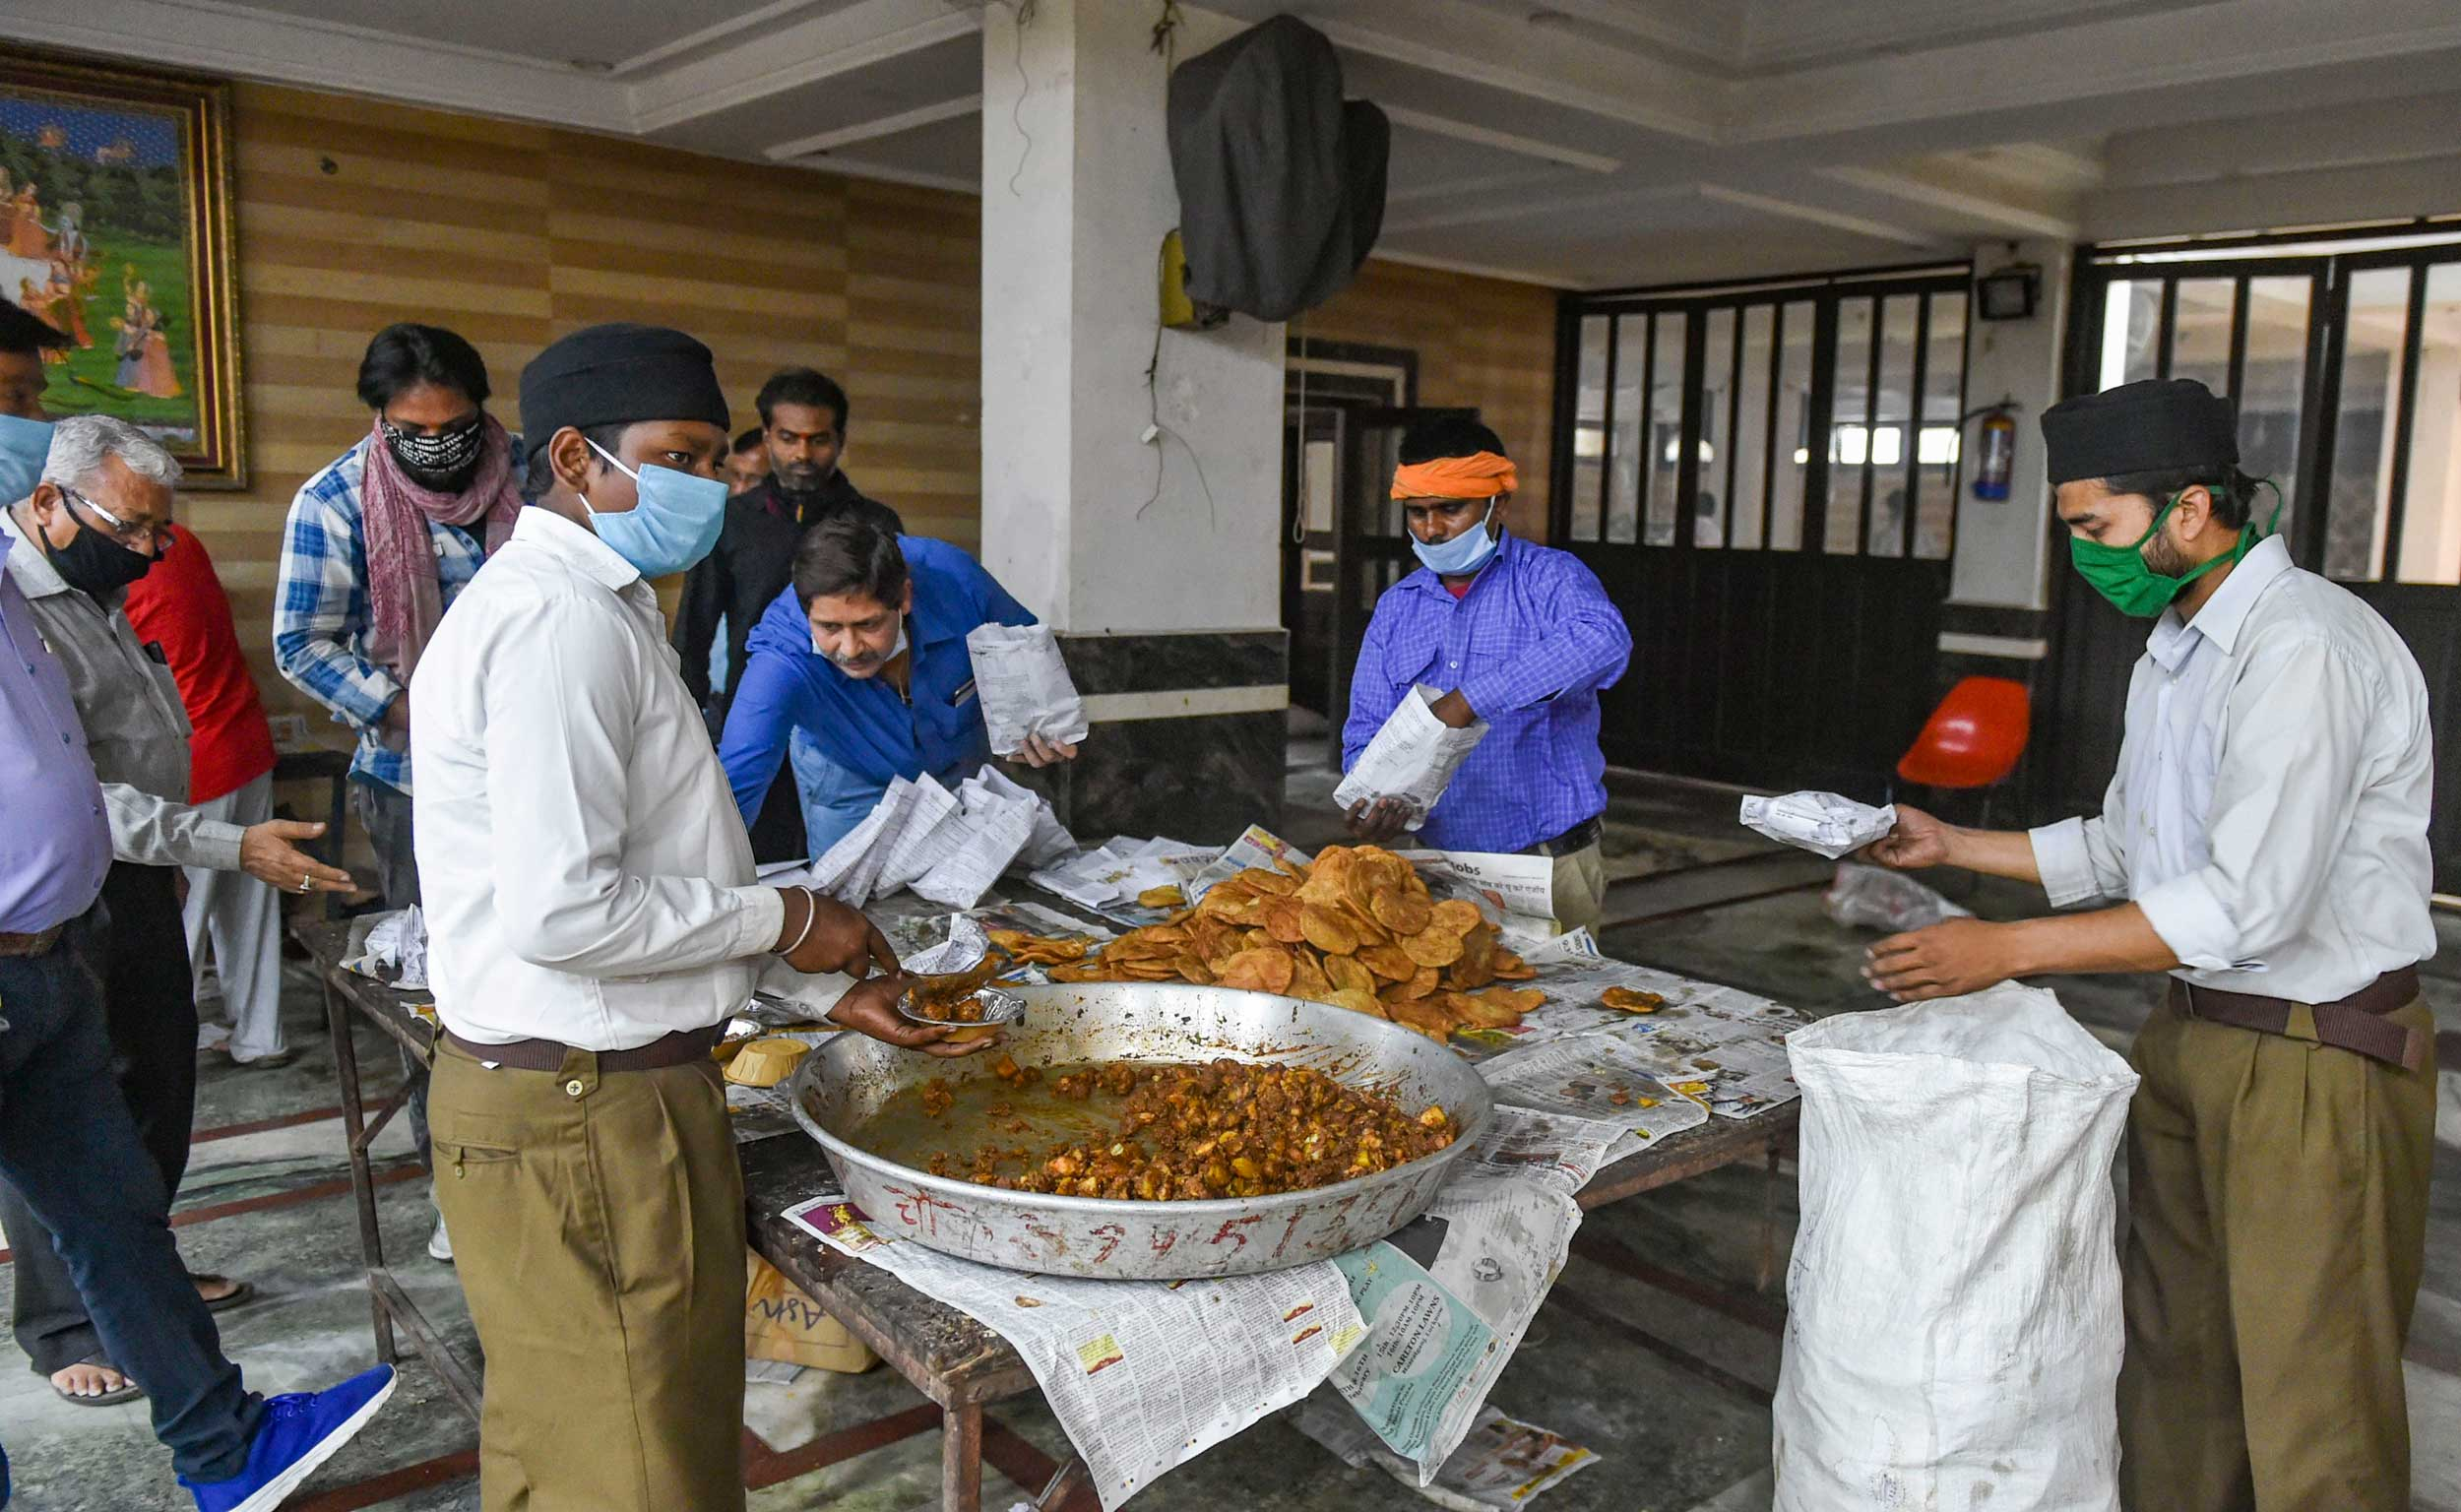 Volunteers pack food for the needy during the nationwide lockdown in Lucknow on Friday.